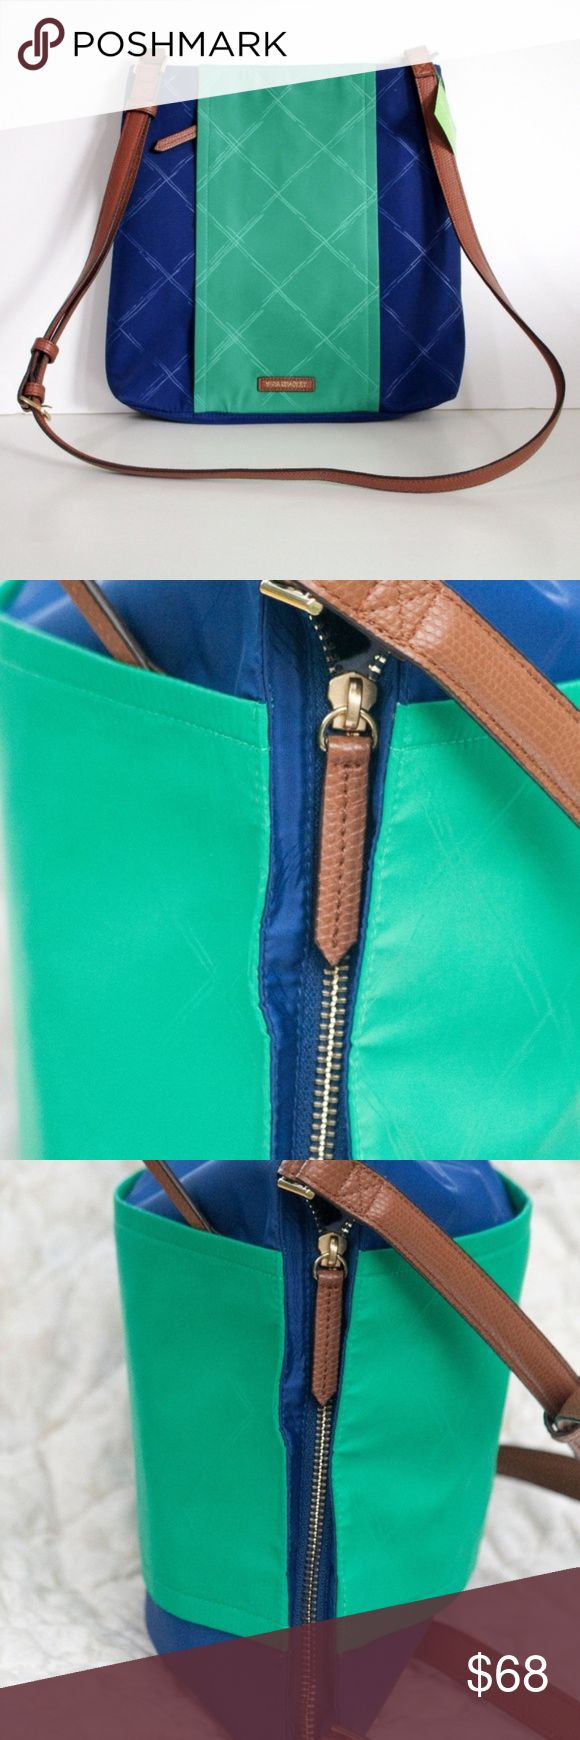 """Vera Bradley Preppy Blue and Green Crossbody Bag Vera Bradley  This small Preppy Poly Molly Crossbody bag has a color called Evening Sky and Clover. A deep blue and bright green make this sleek bag pop and stand out.   13"""" x 11"""" x 1.25"""" Weight: 12 oz  Top zip closure Adjustable crossbody strap with a drop length of 24 inches Vertical front zip pocket stores phone or keys A hidden magnetic slip pocket sits just inside the bag's recessed zip-top opening Interior has two slip pockets and a zip…"""